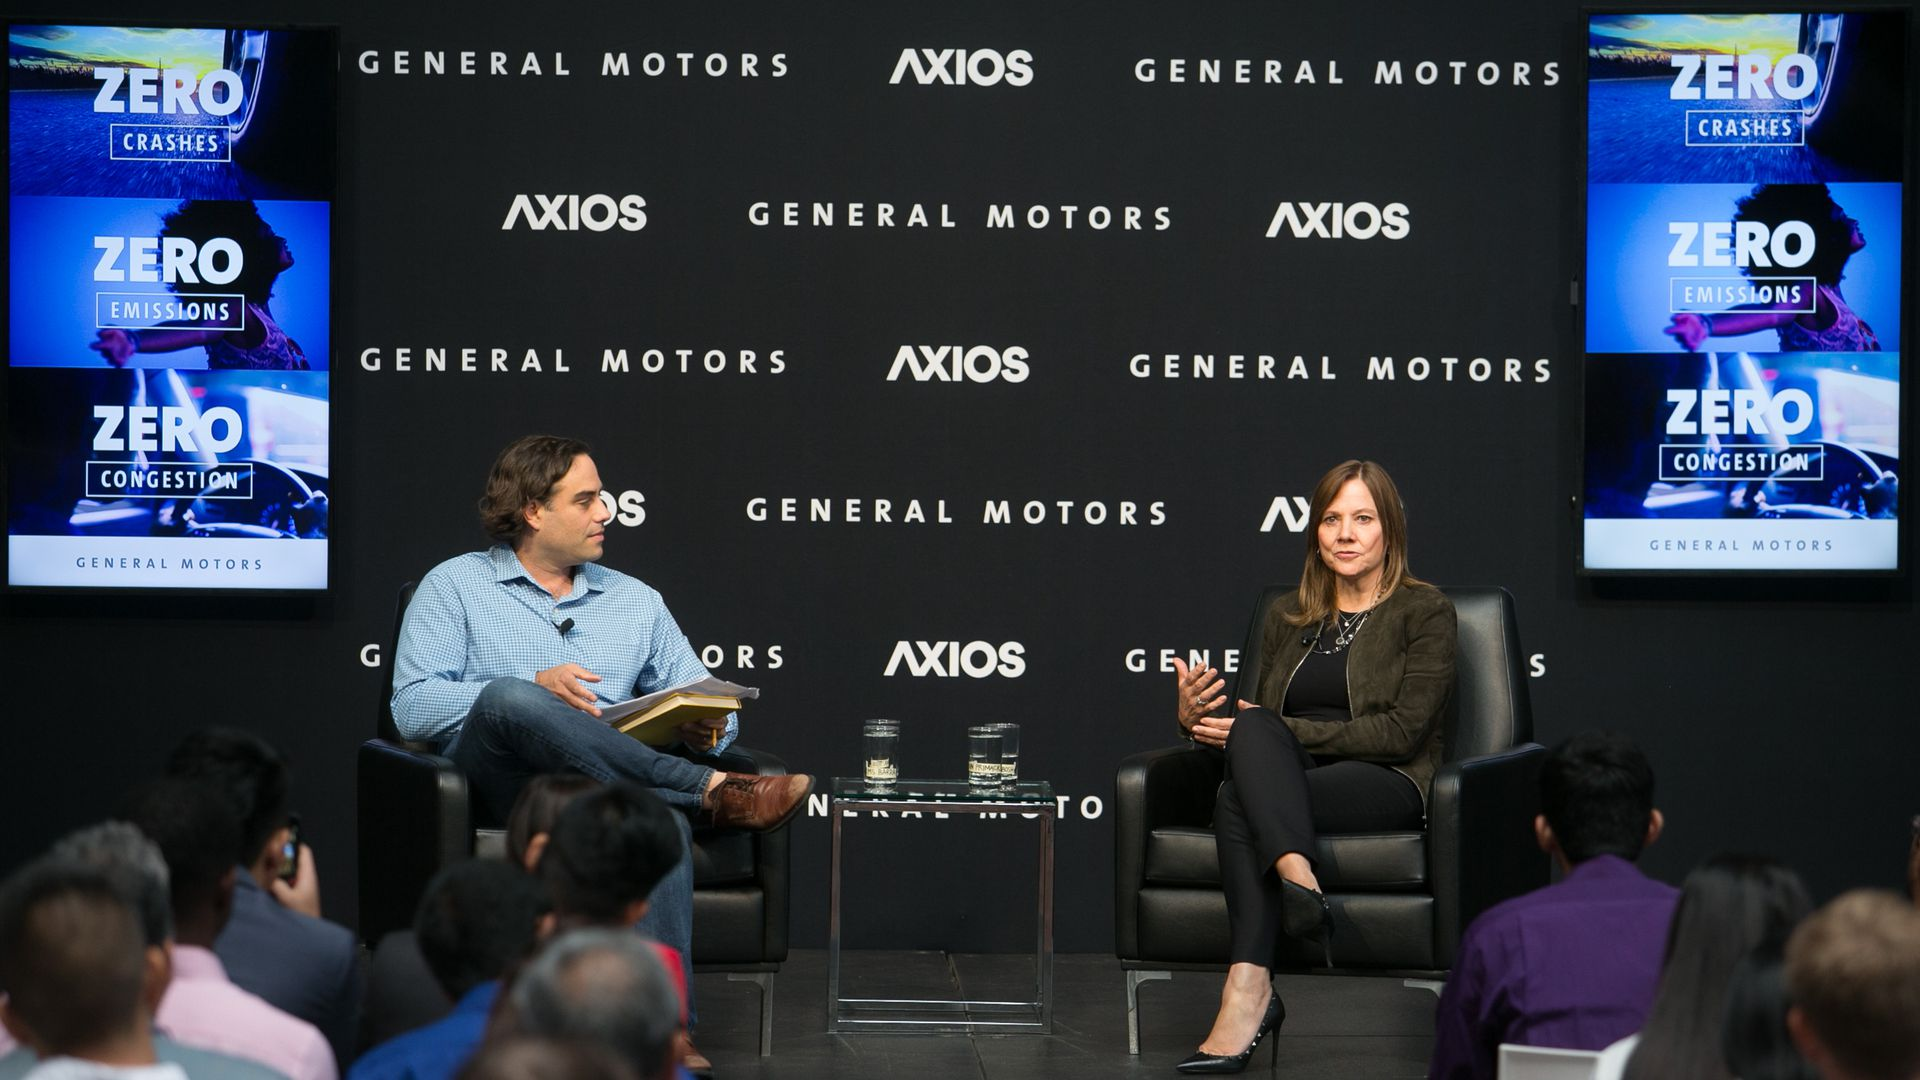 Axios Business Editor Dan Primack interviewing GM CEO Mary Barra.